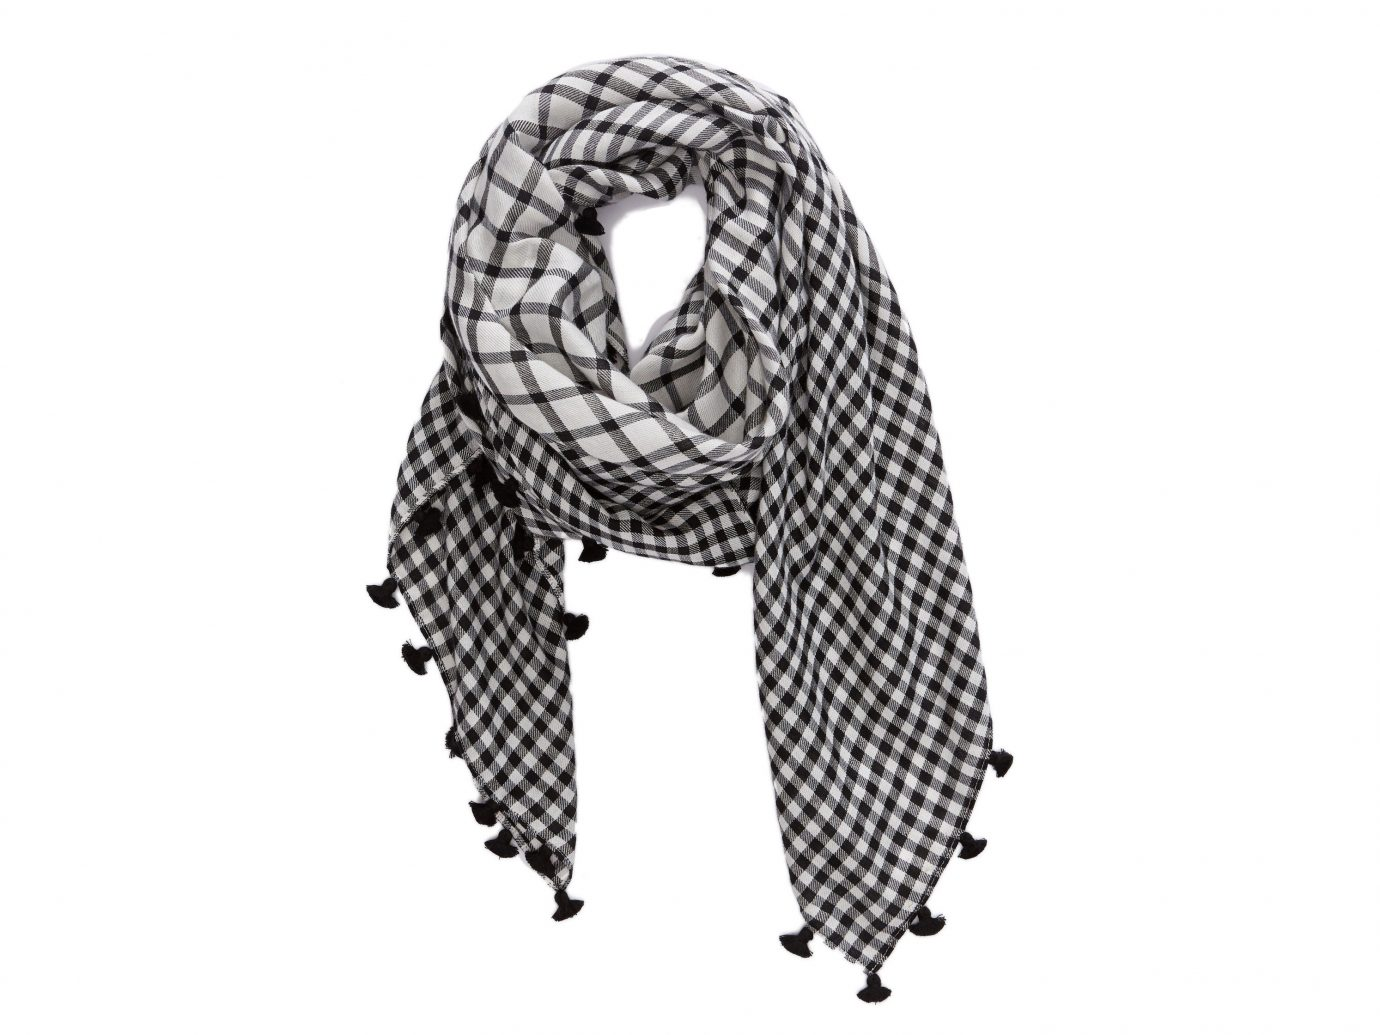 Style + Design Travel Shop scarf stole product product design font pattern neck